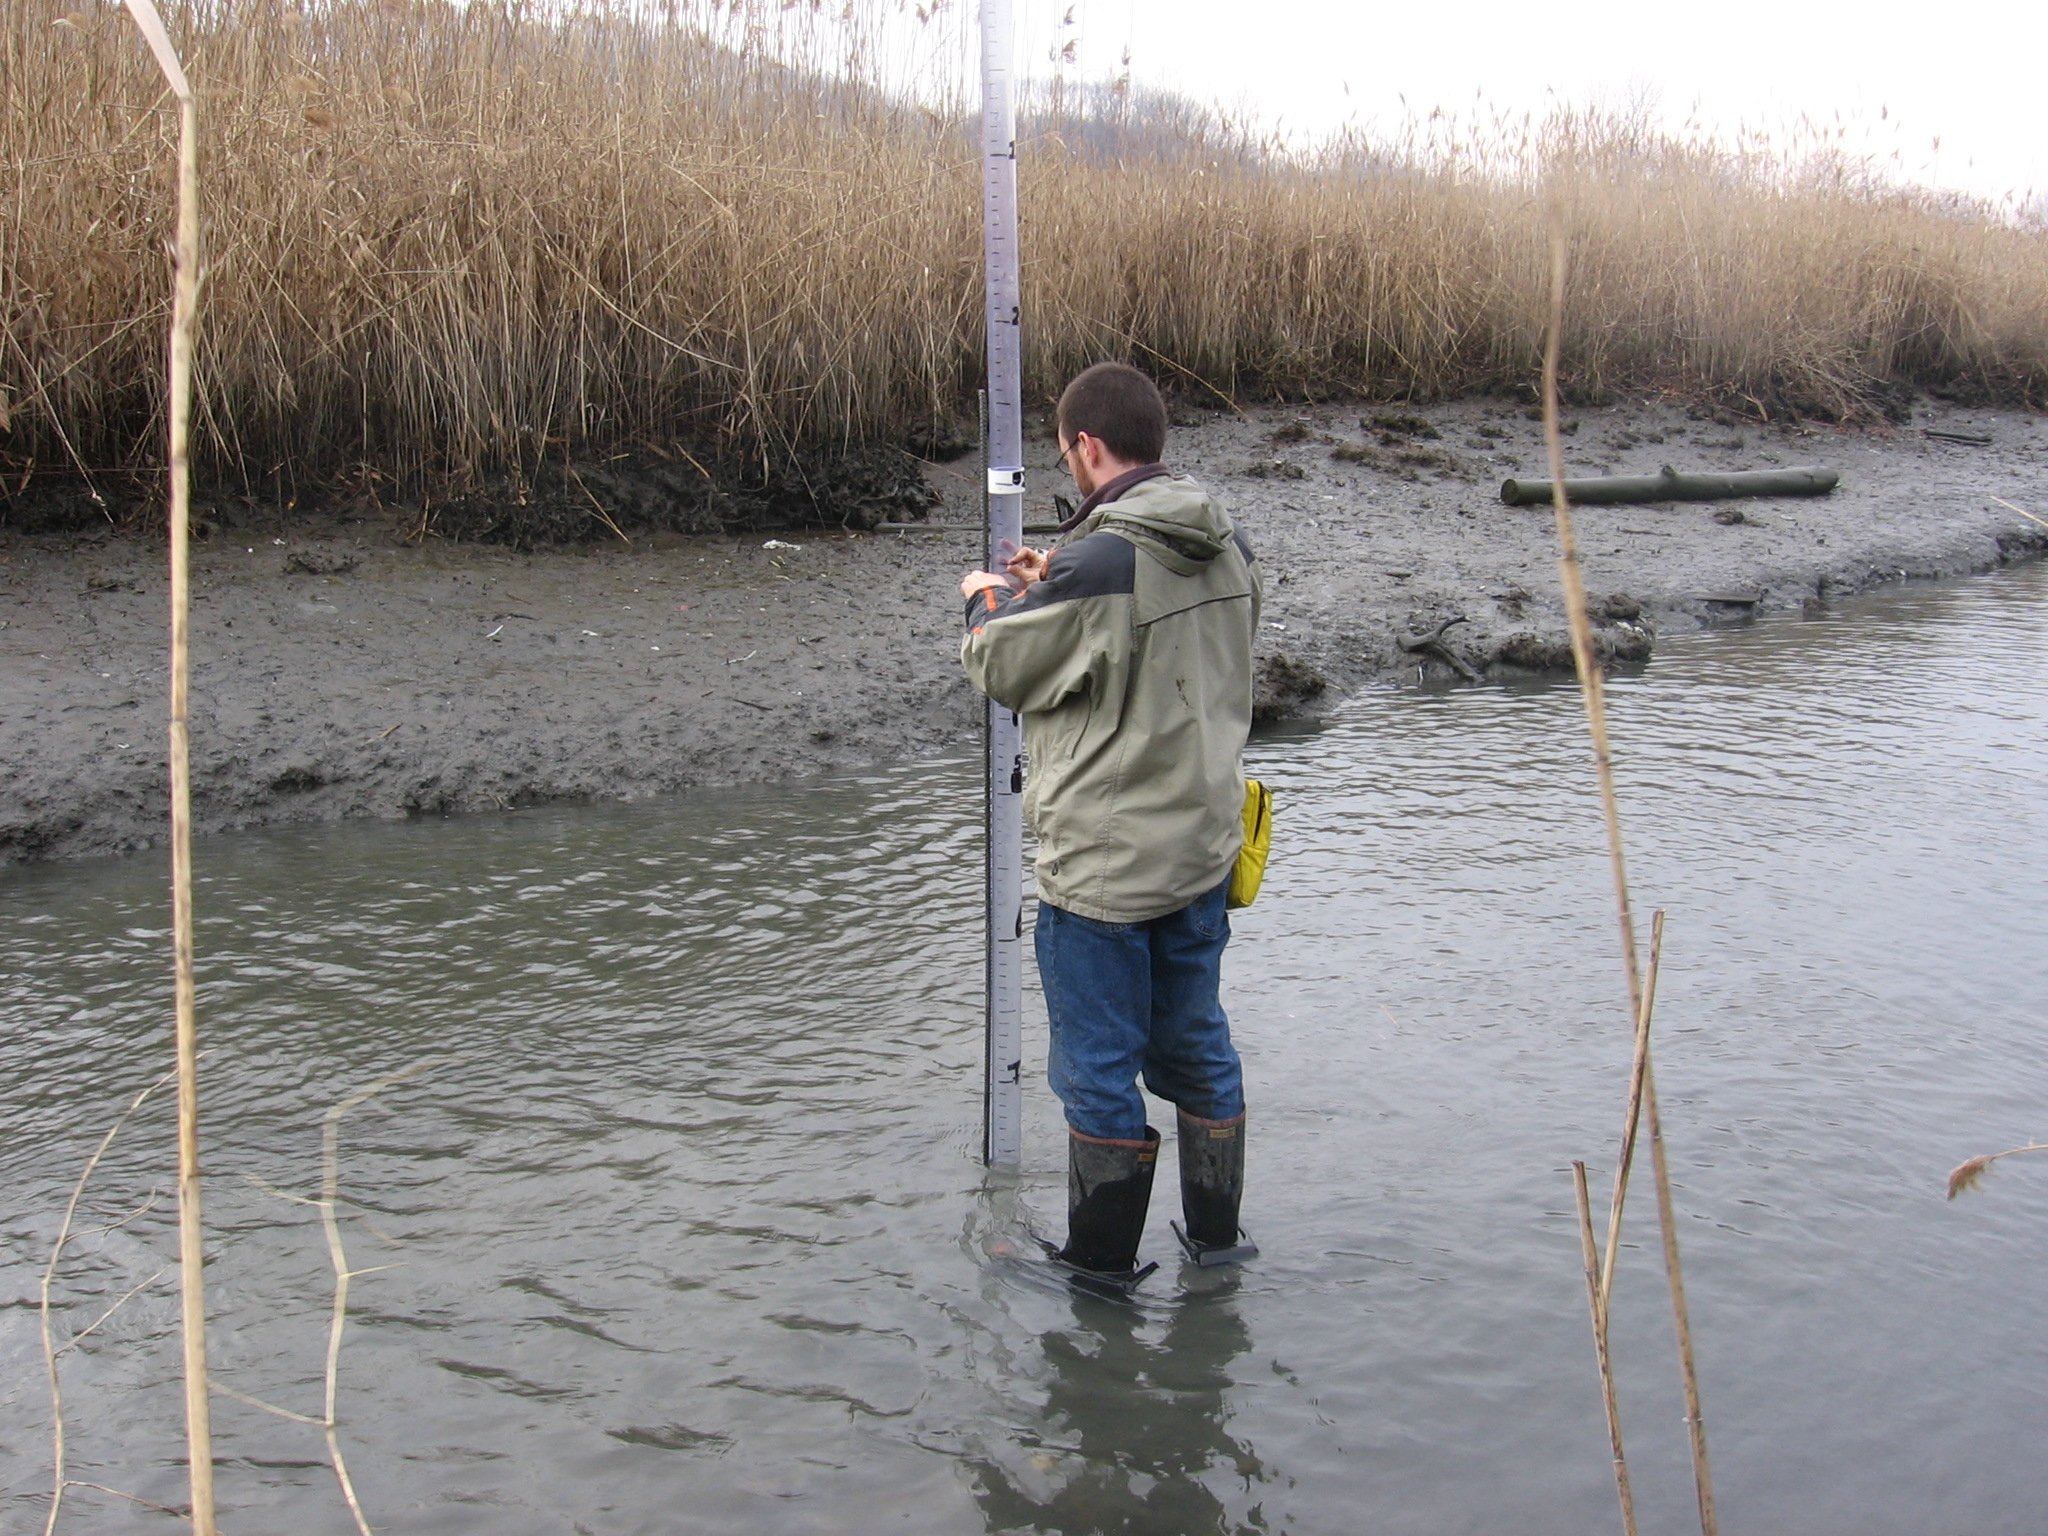 A man in boots measures stream depth